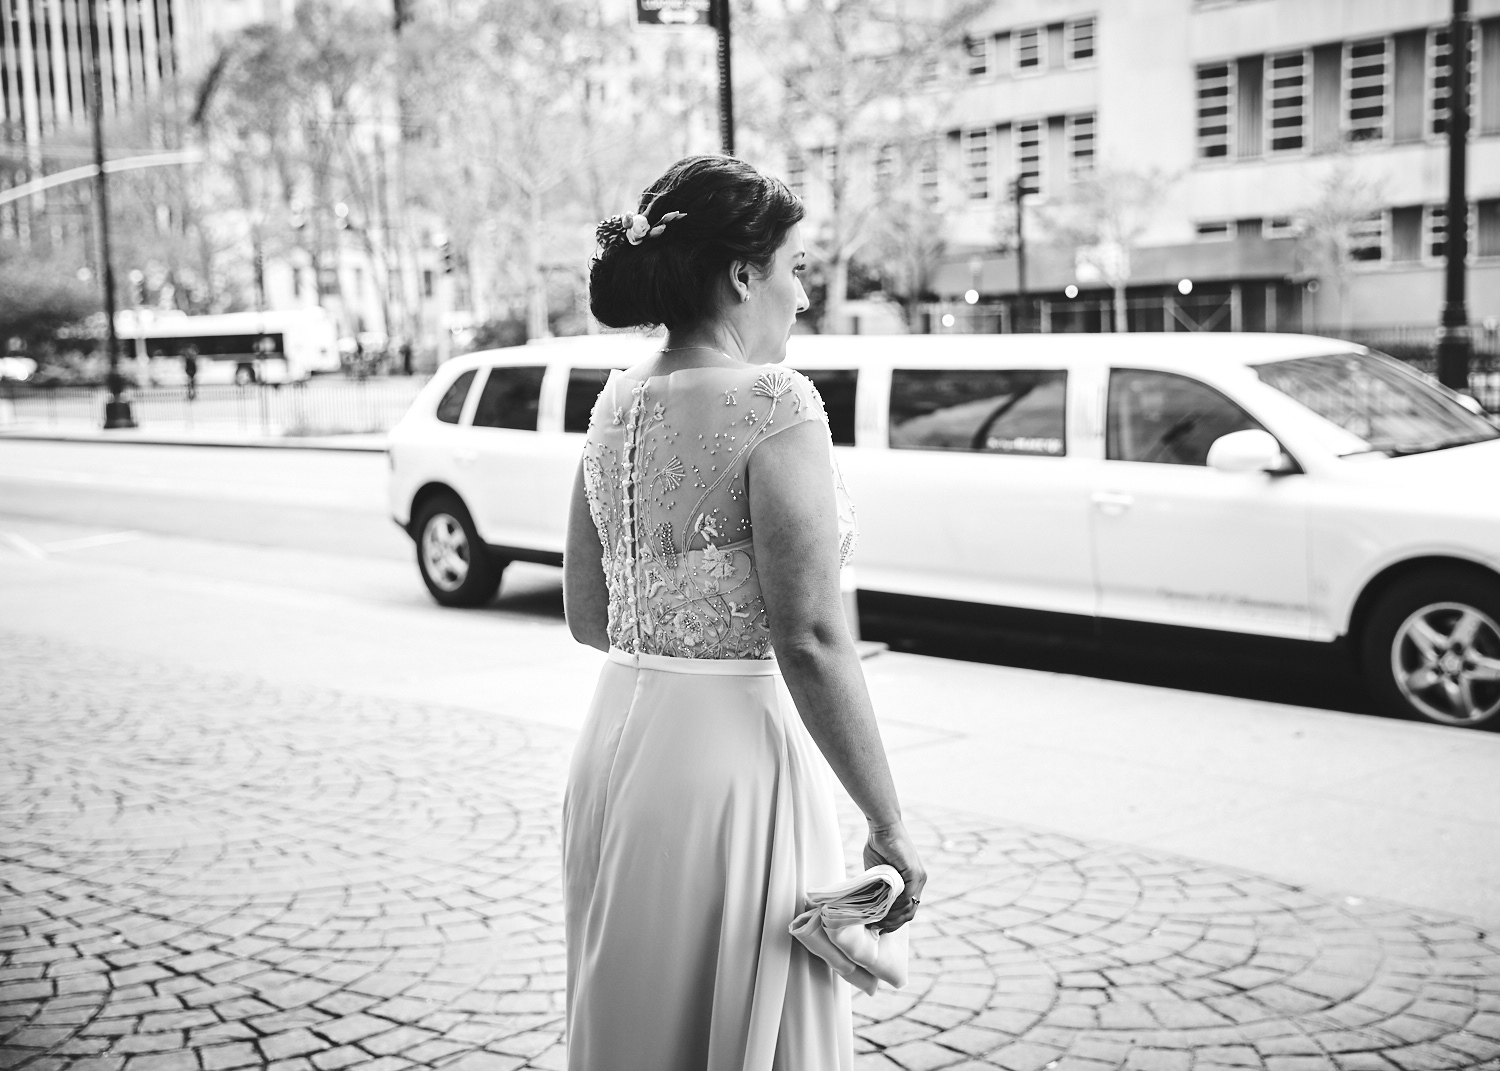 161022_A&B_26BridgeStWedding_By_BriJohnsonWeddings_0026.jpg